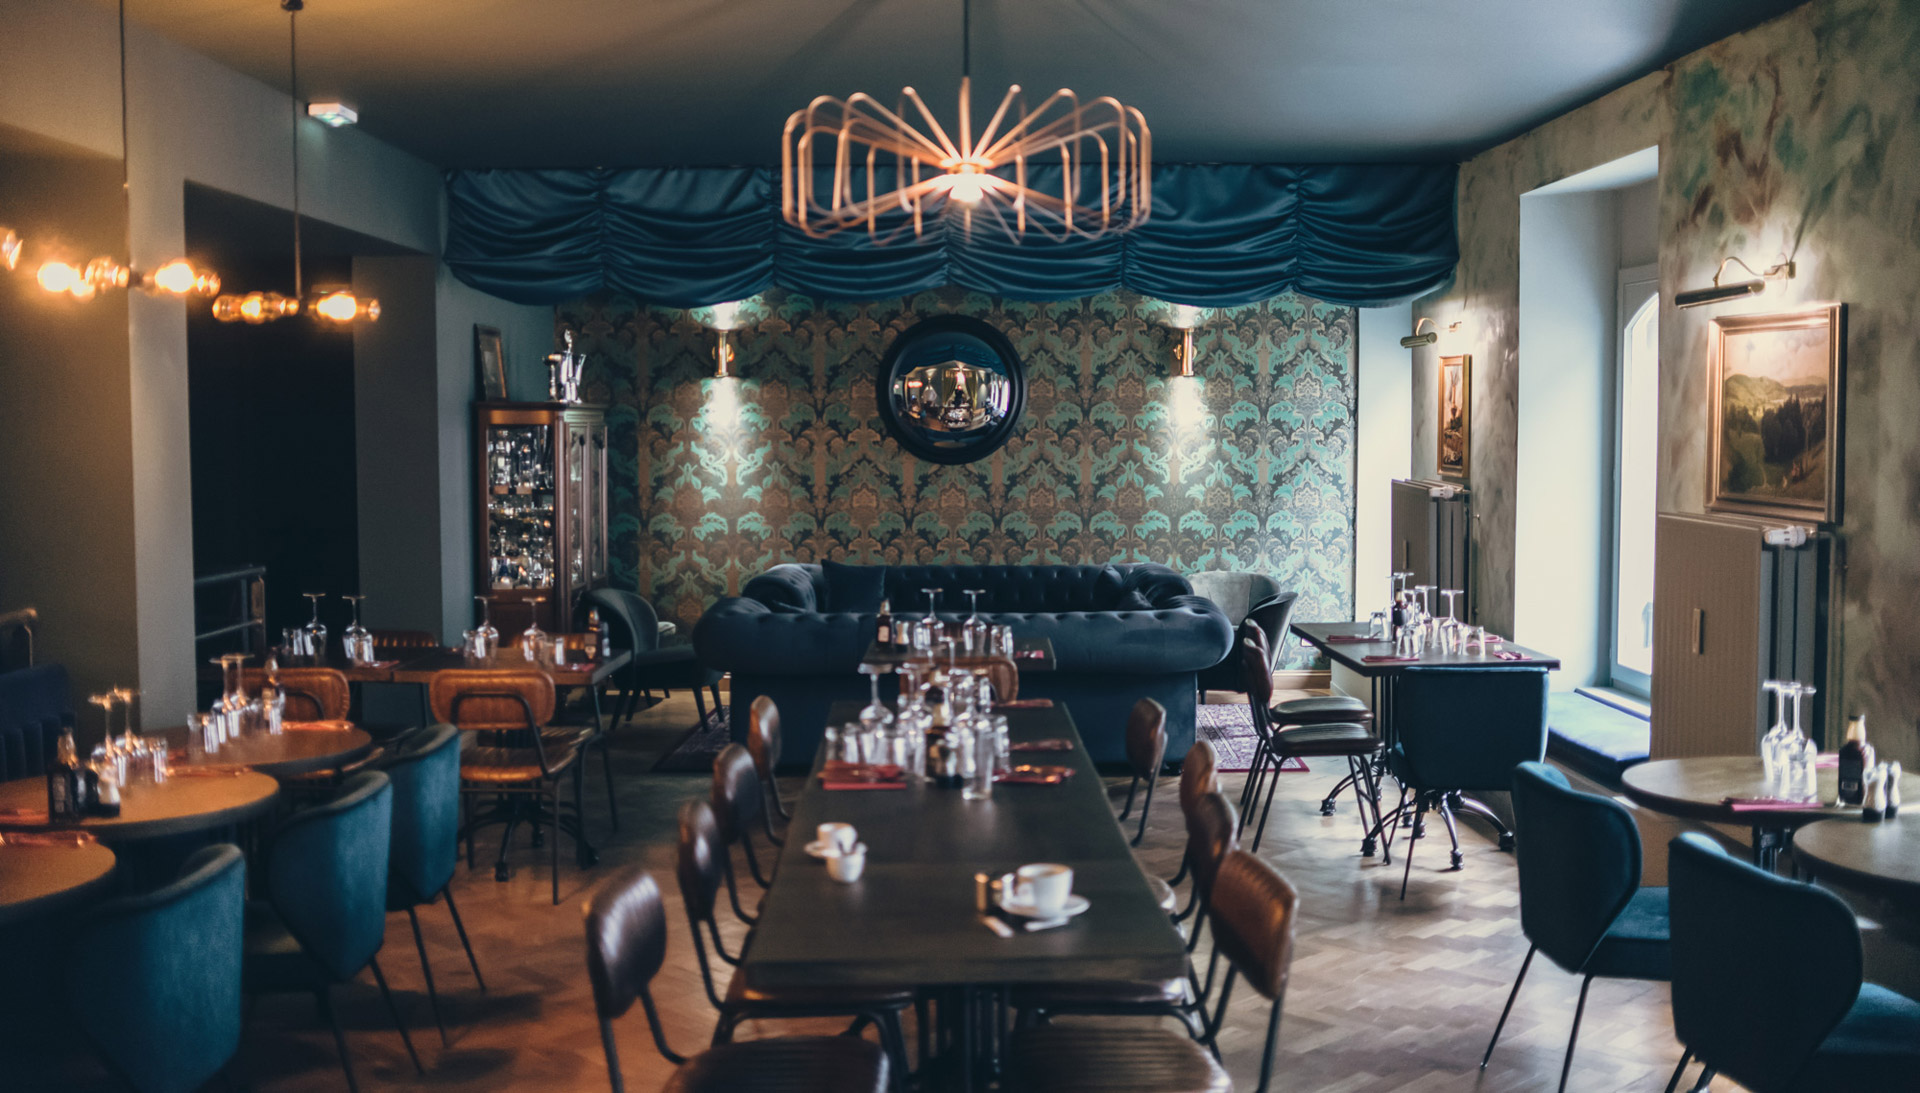 Our picture lights complement the elegance of this Texas BBQ restaurant in France